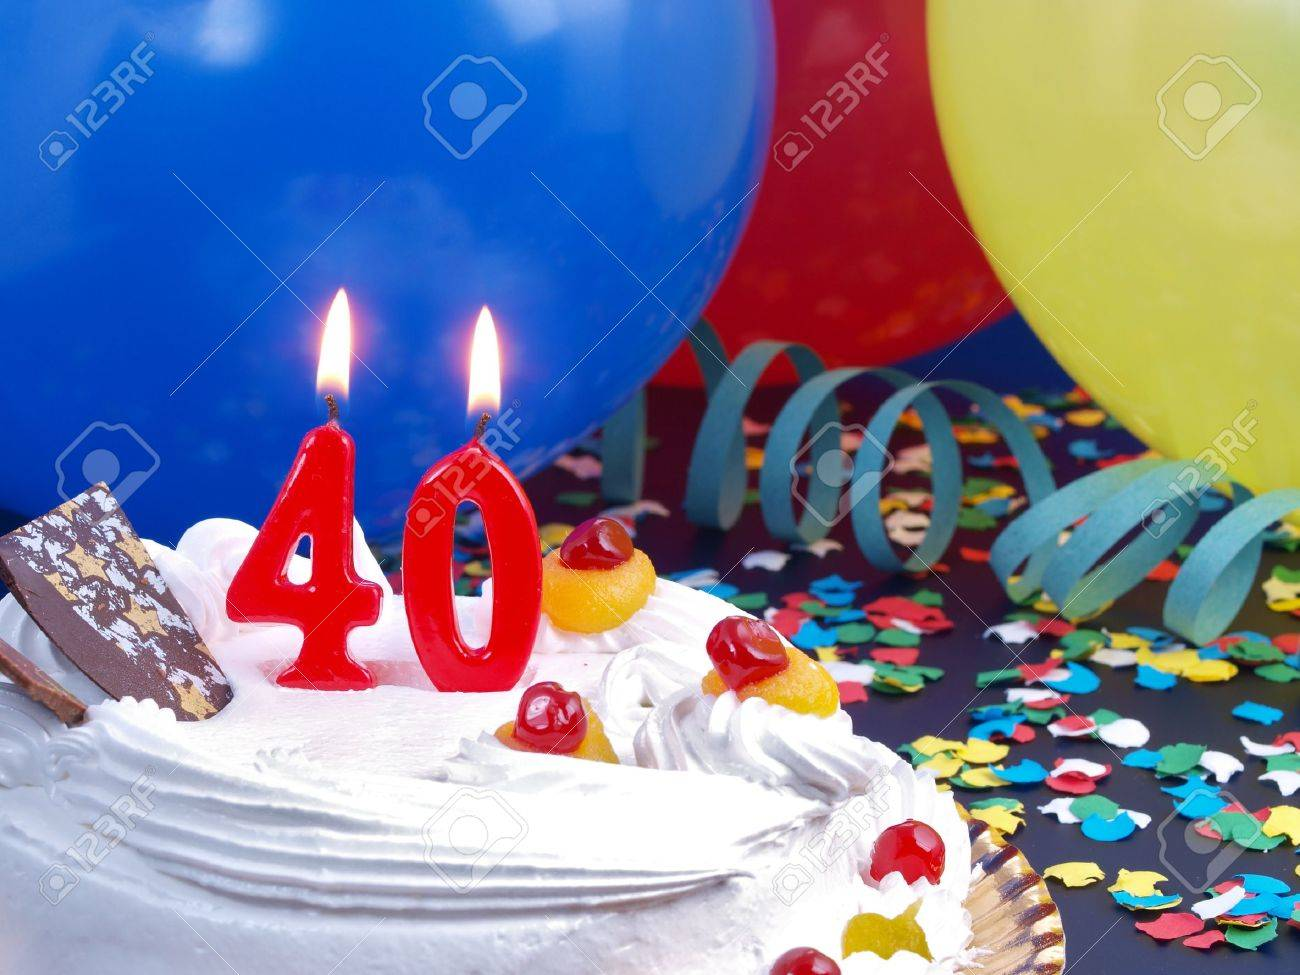 Birthday Cake With Red Candles Showing Nr 40 Stock Photo Picture